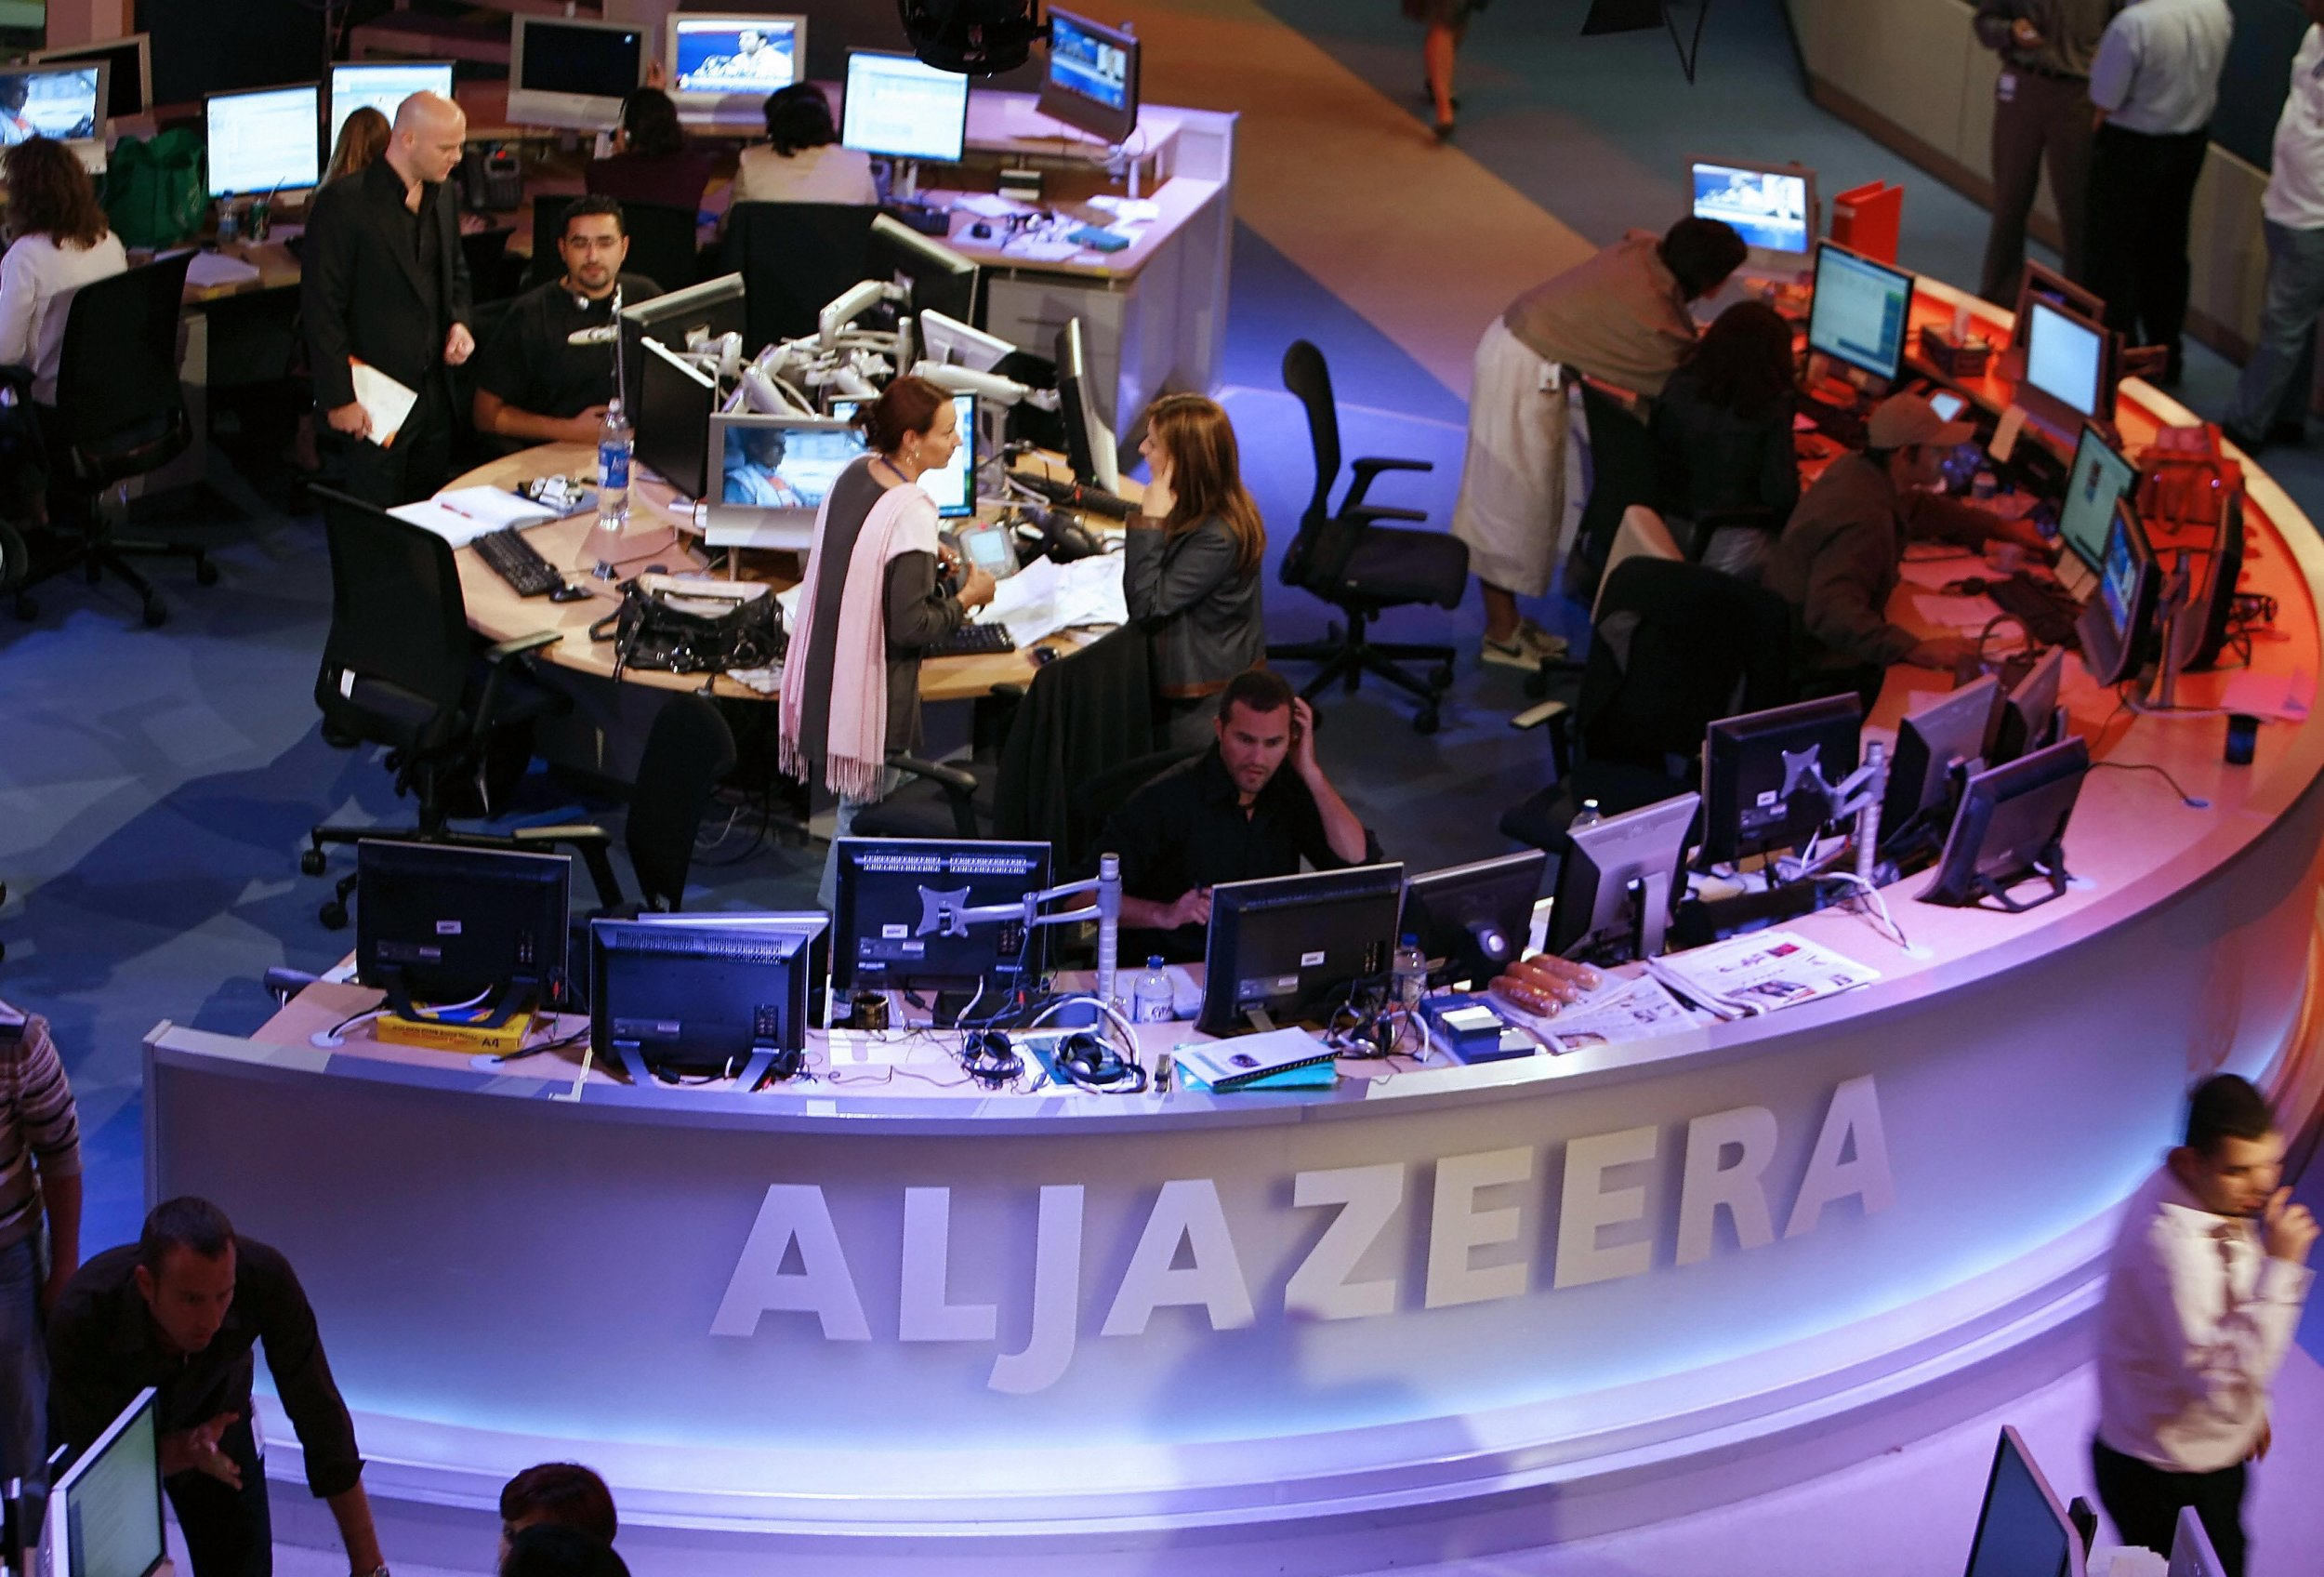 Qatar-based network Al Jazeera